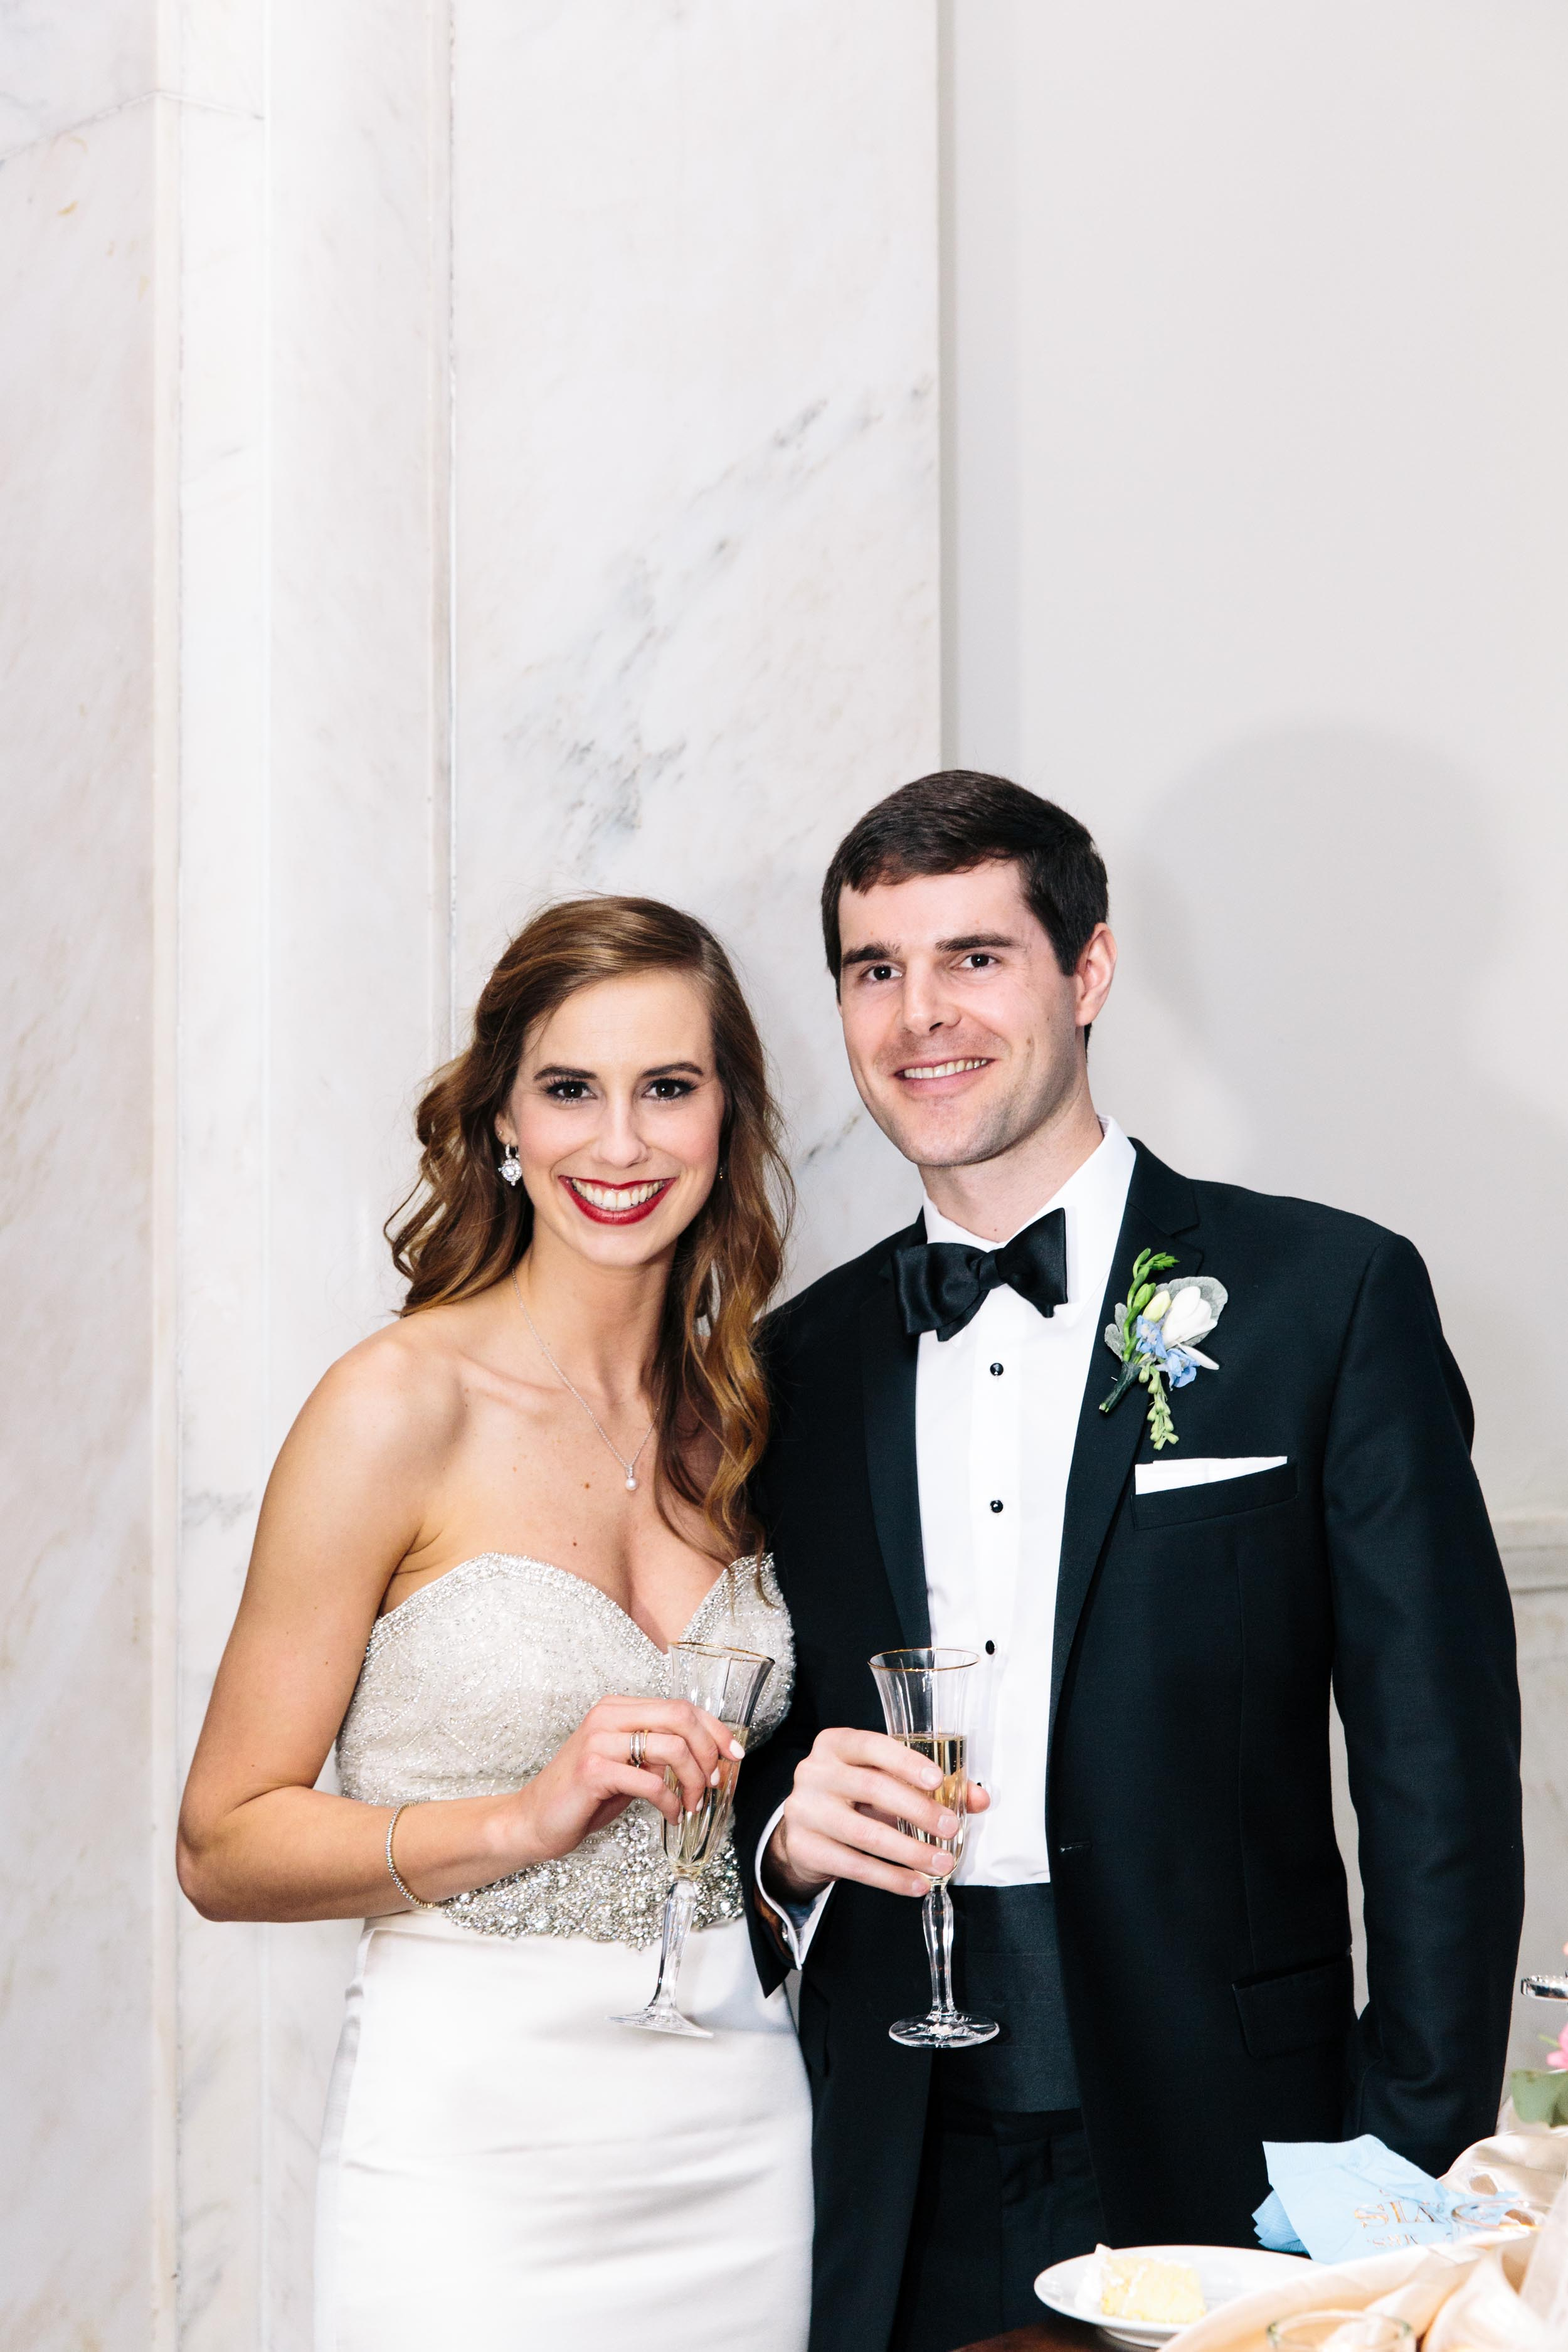 jimmy-rowalt-atlanta-wedding-photography-114.jpg